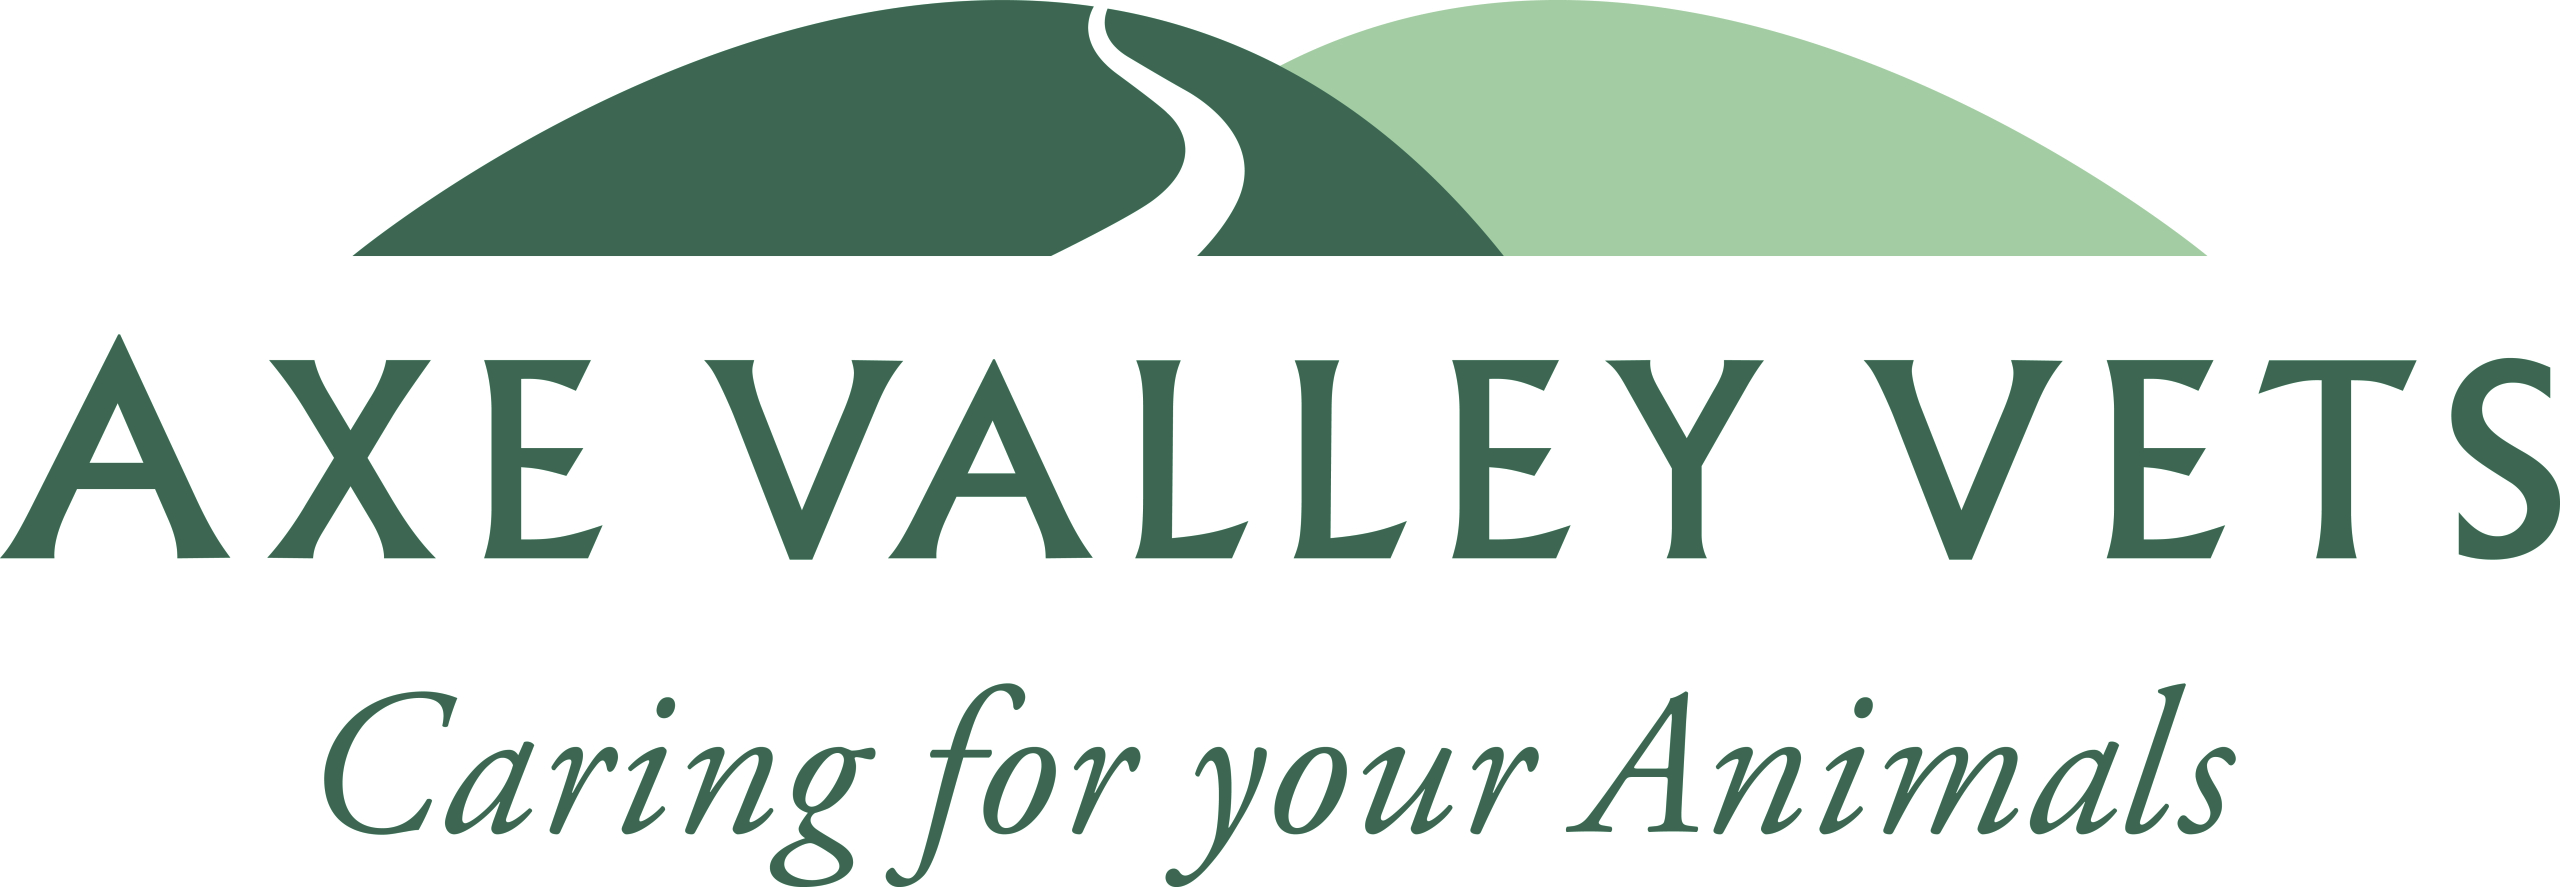 Contact Axe Valley Vets